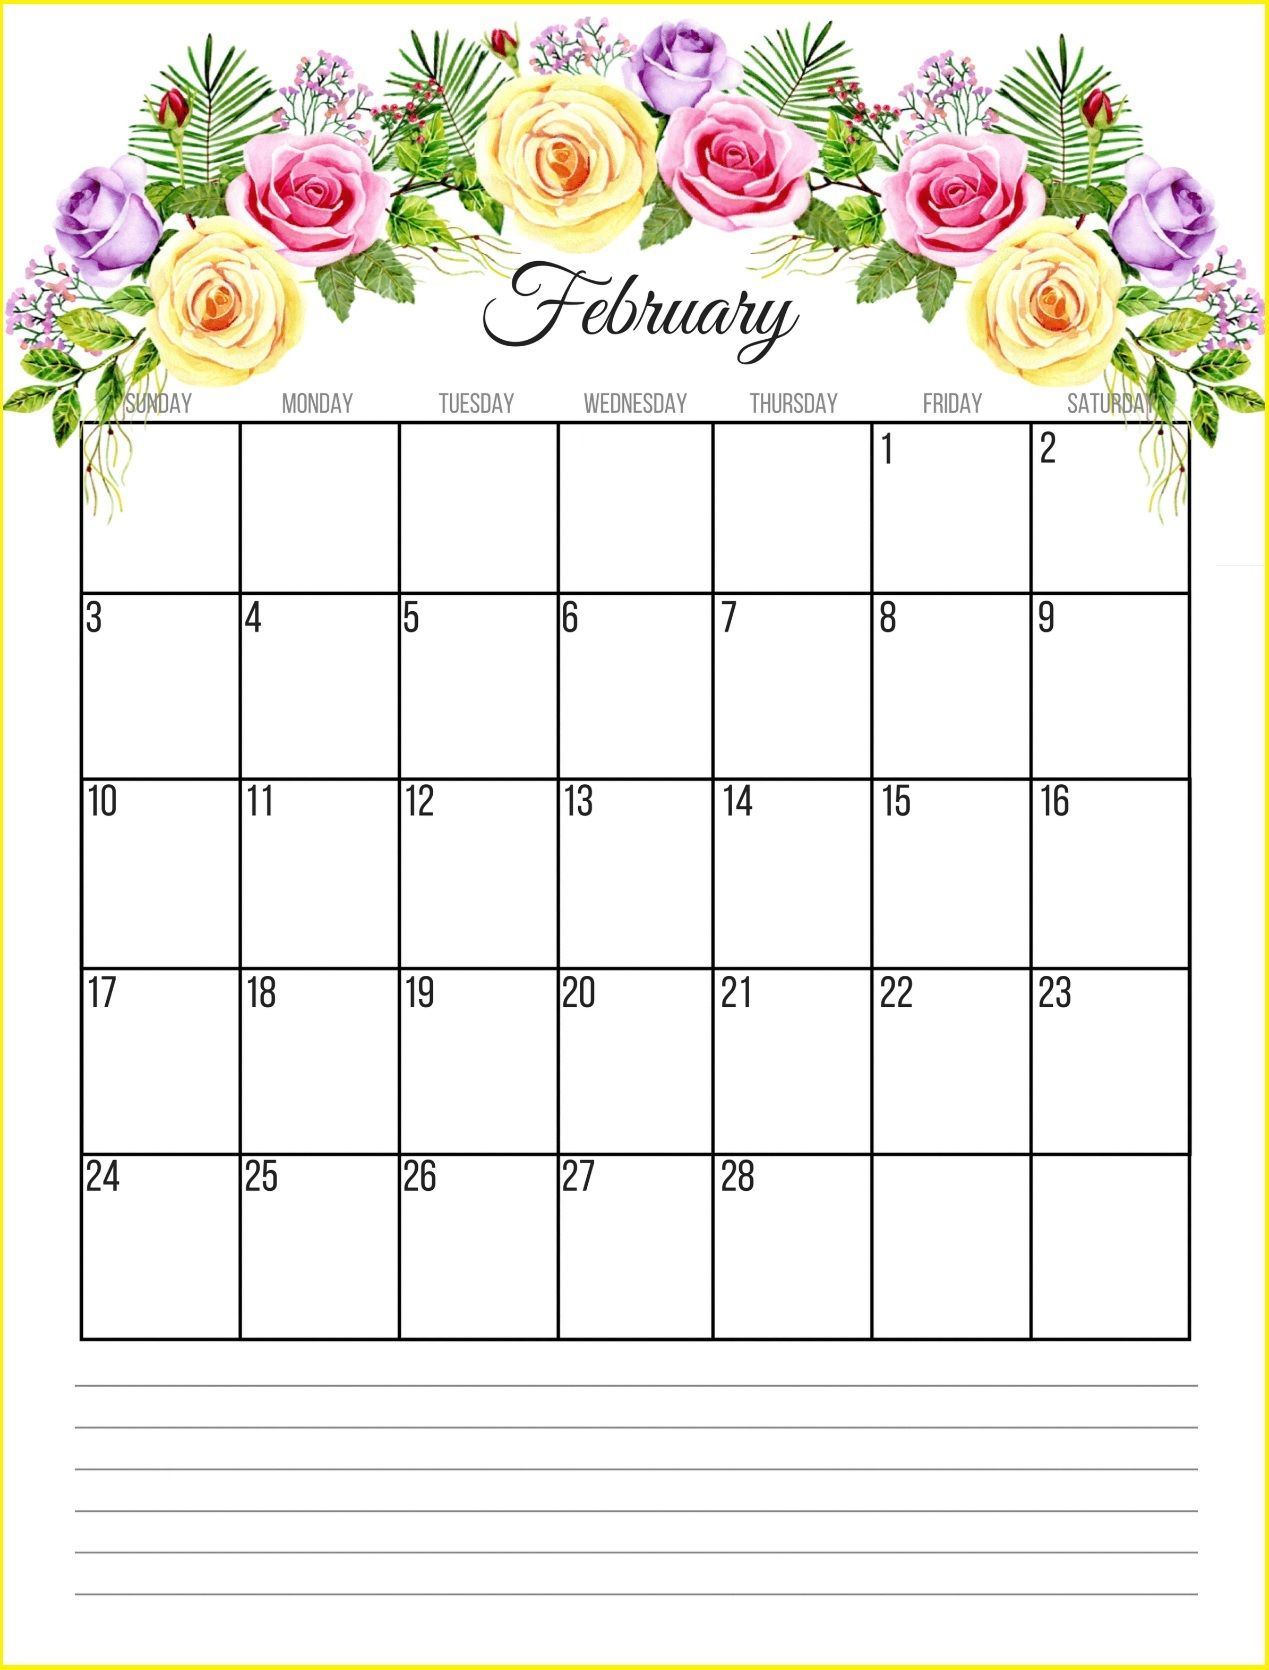 Floral February 2019 Calendar Monthly Templates Free Download Hd